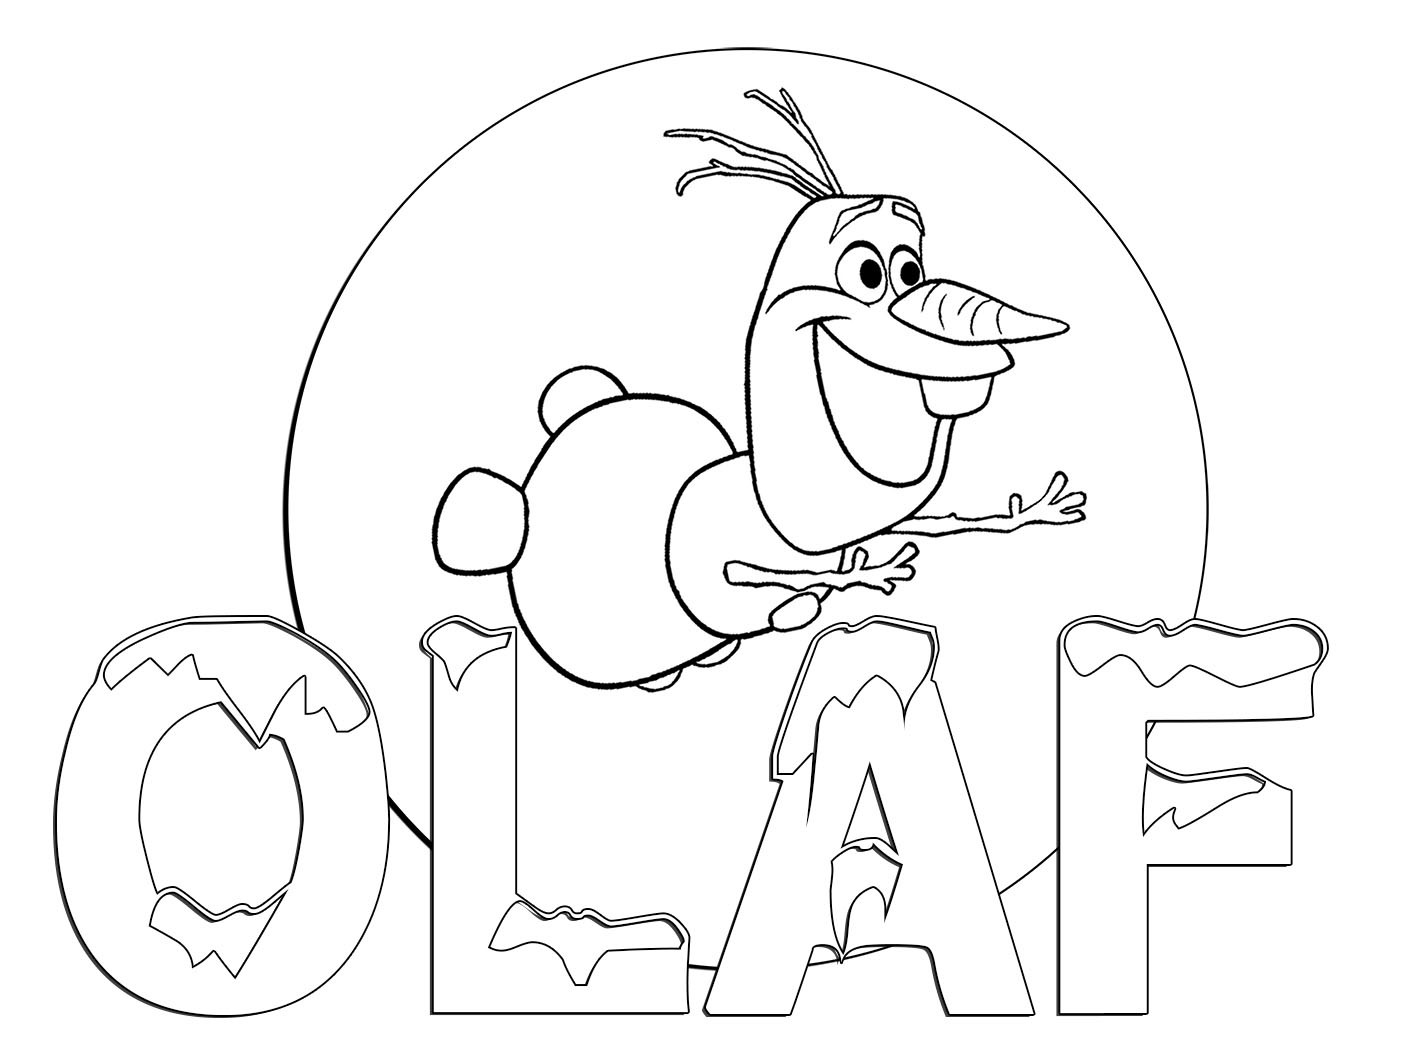 Coloring Pages Frozen Disney : Free printable frozen coloring pages for kids best